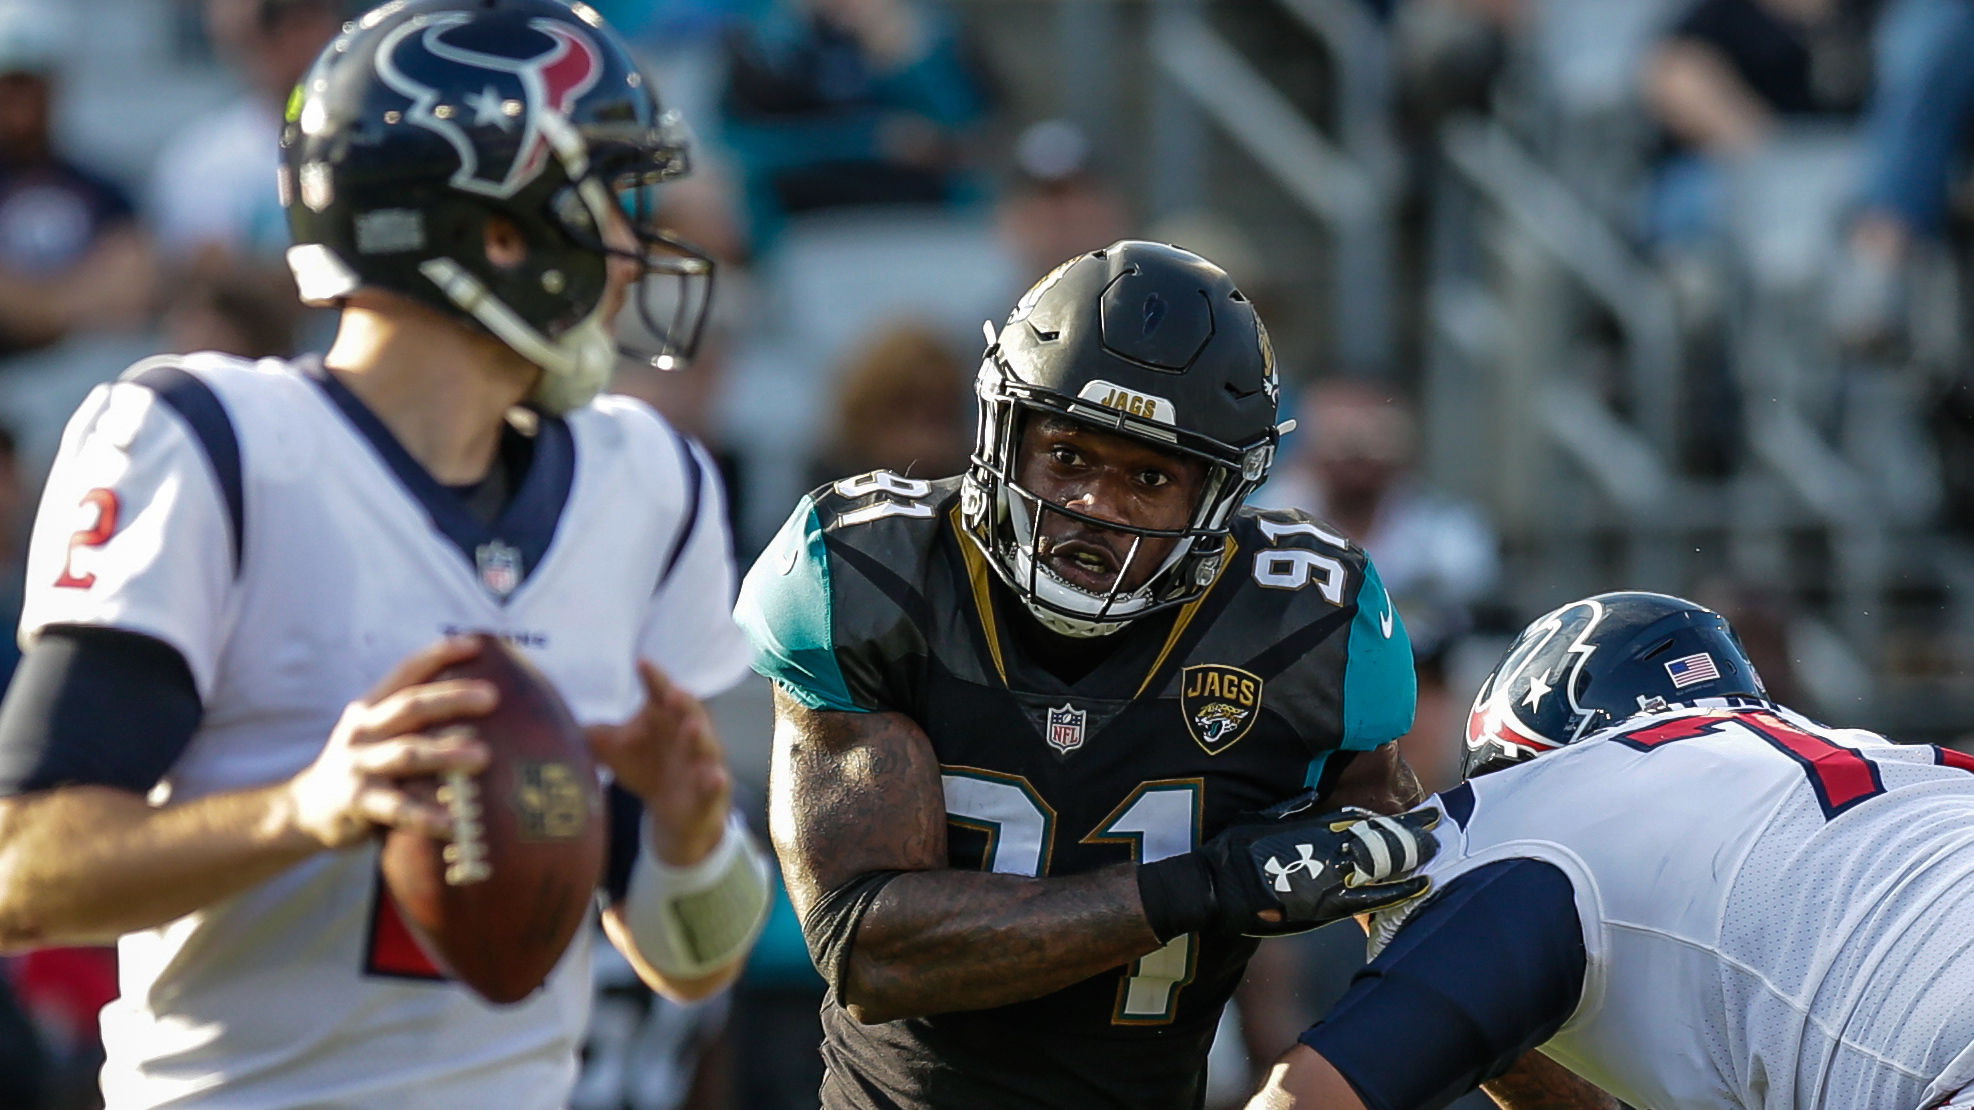 NFL: DEC 17 Texans at Jaguars